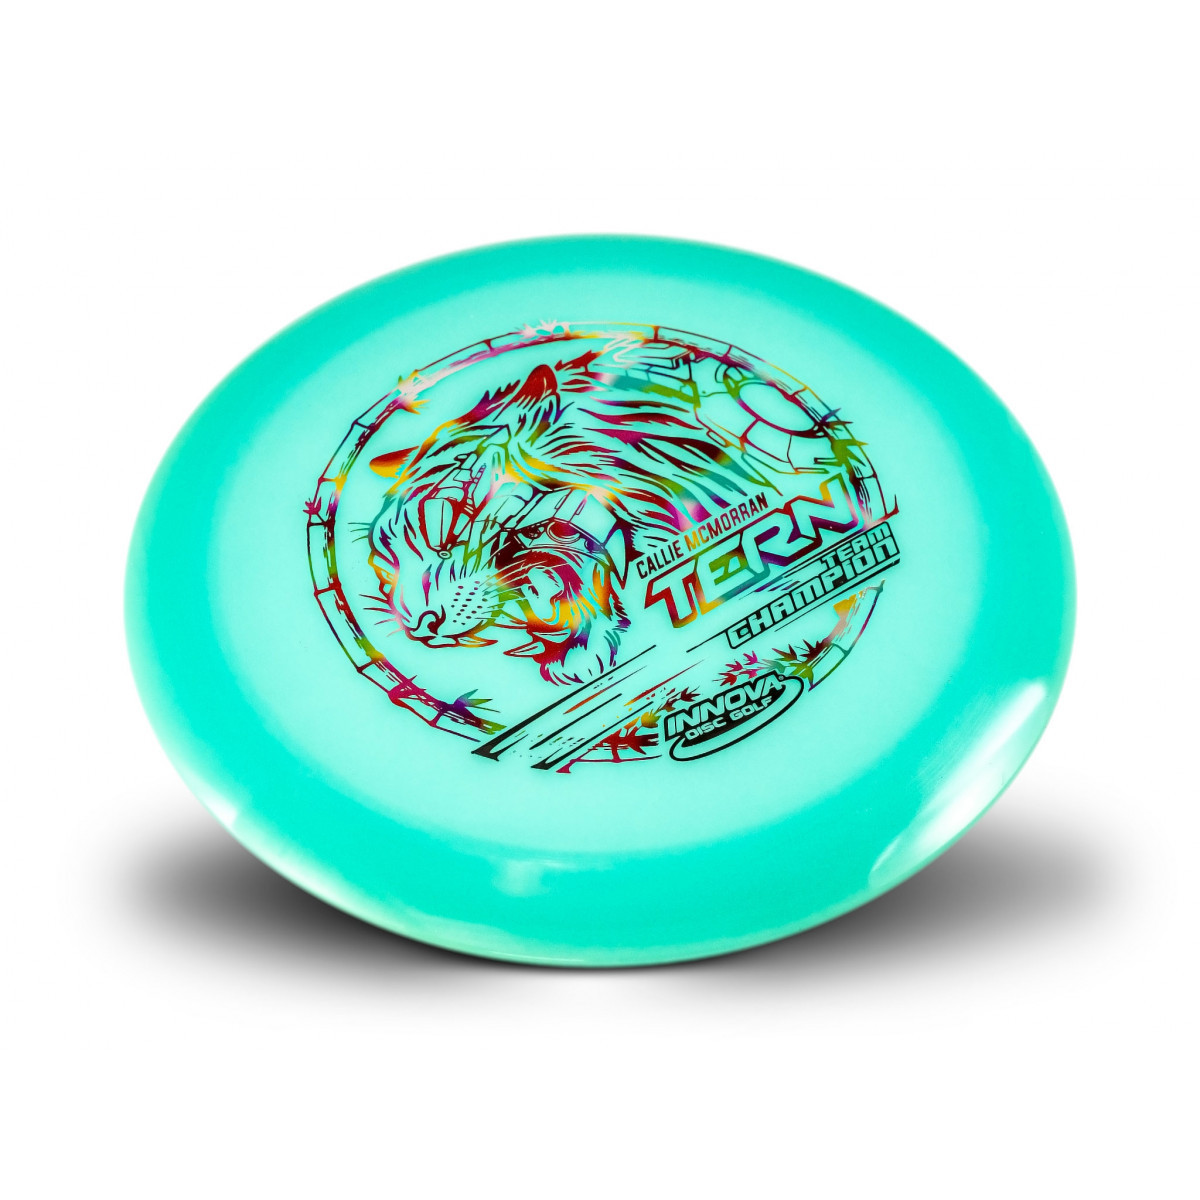 Innova Champion Color Glow Tern Callie McMorran Tour Series